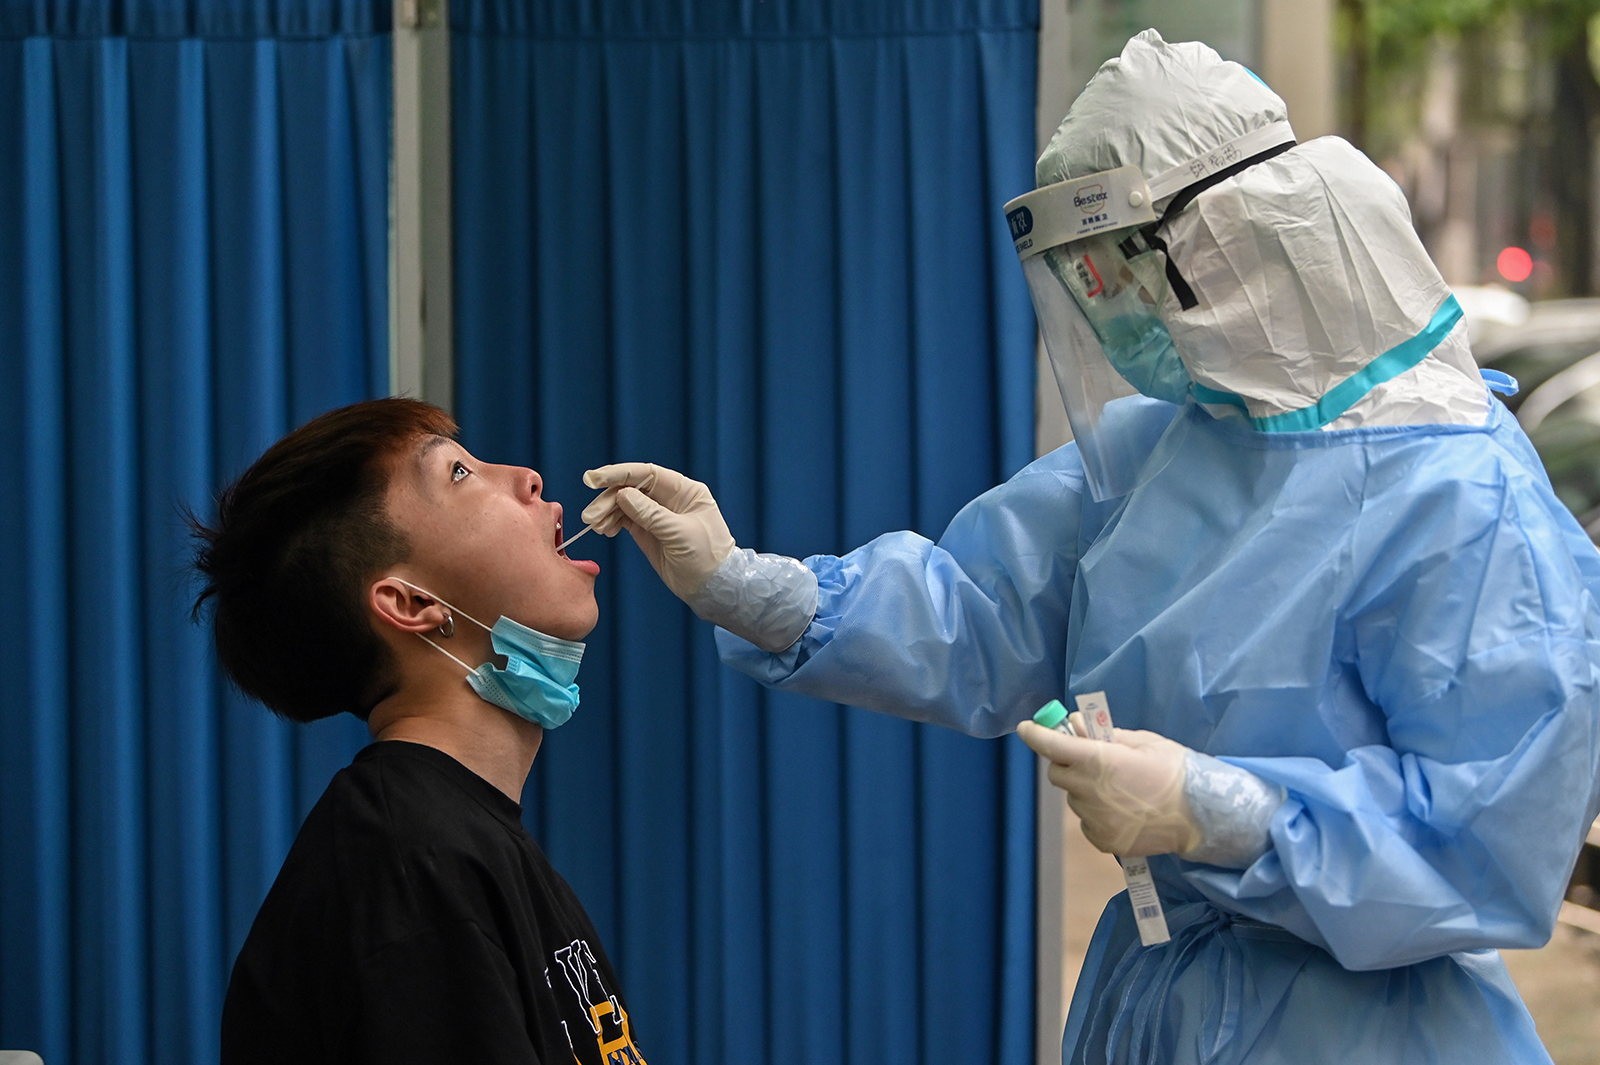 A medical worker takes a swab sample from a man to be tested for coronavirus in Wuhan, China on May 14.